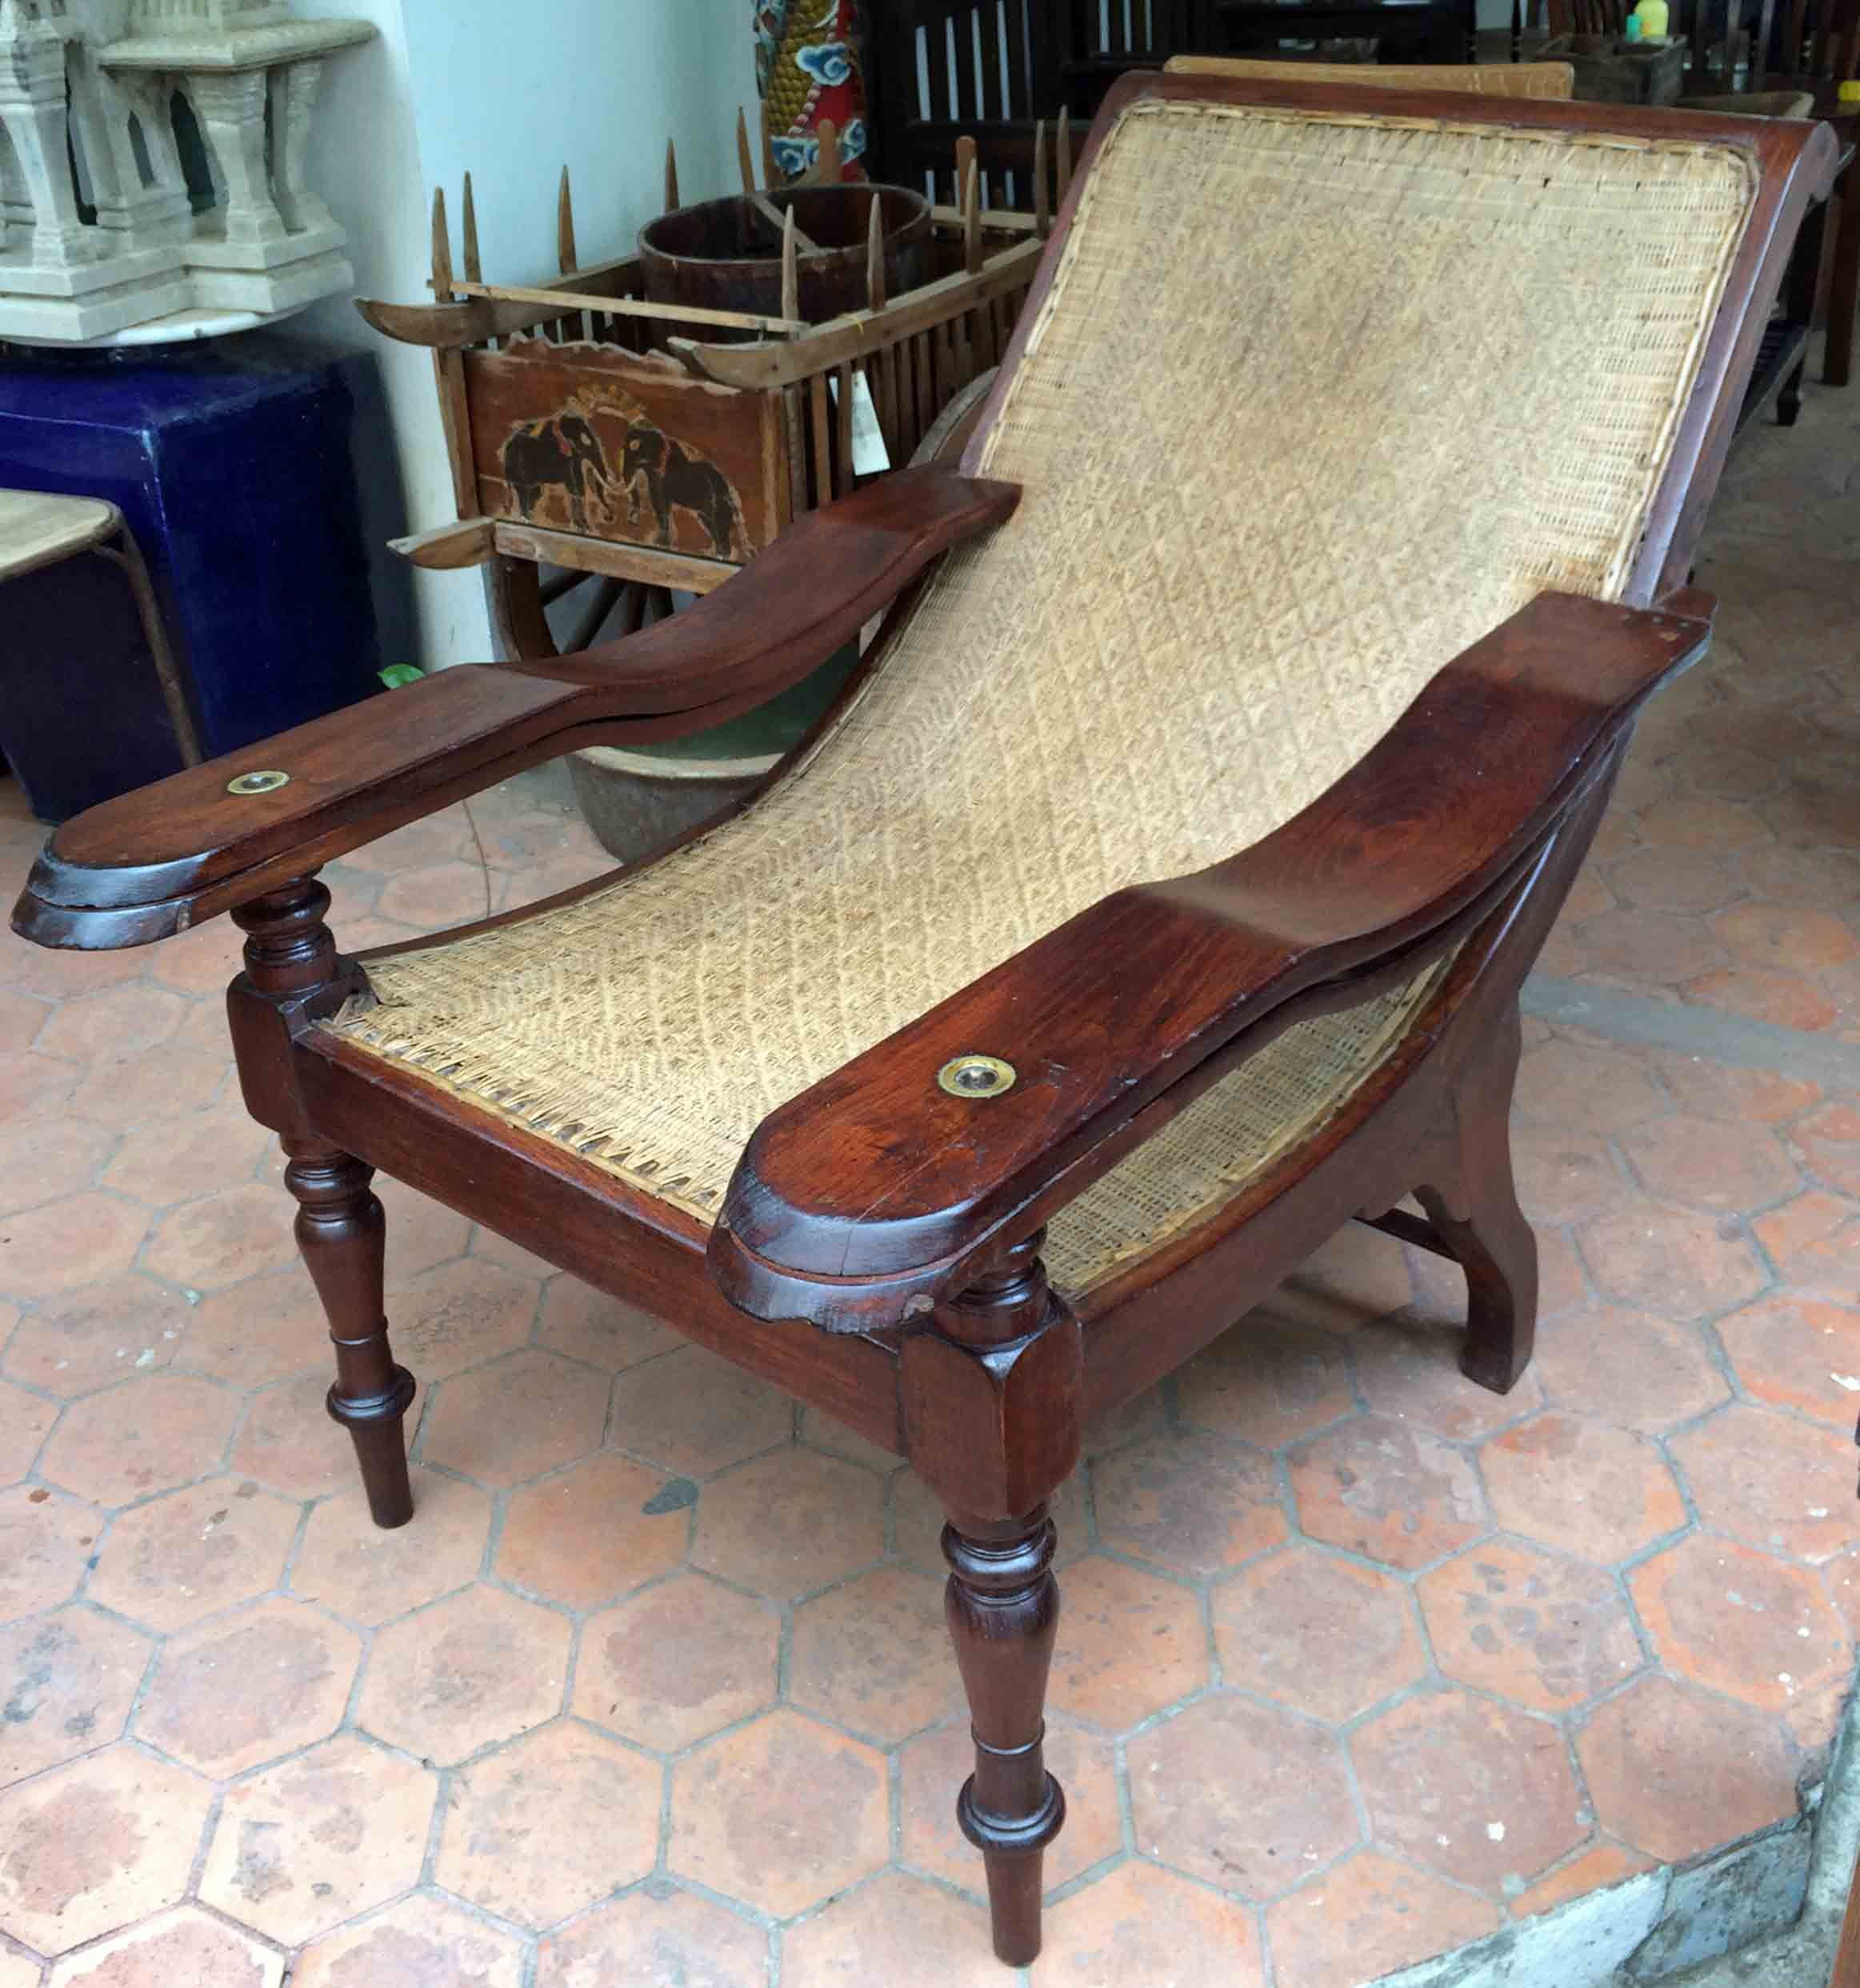 Teak plantation chair - Antique Plantation Chair From Burma Teak And Rattan With Original Brass Fittings And Rattan